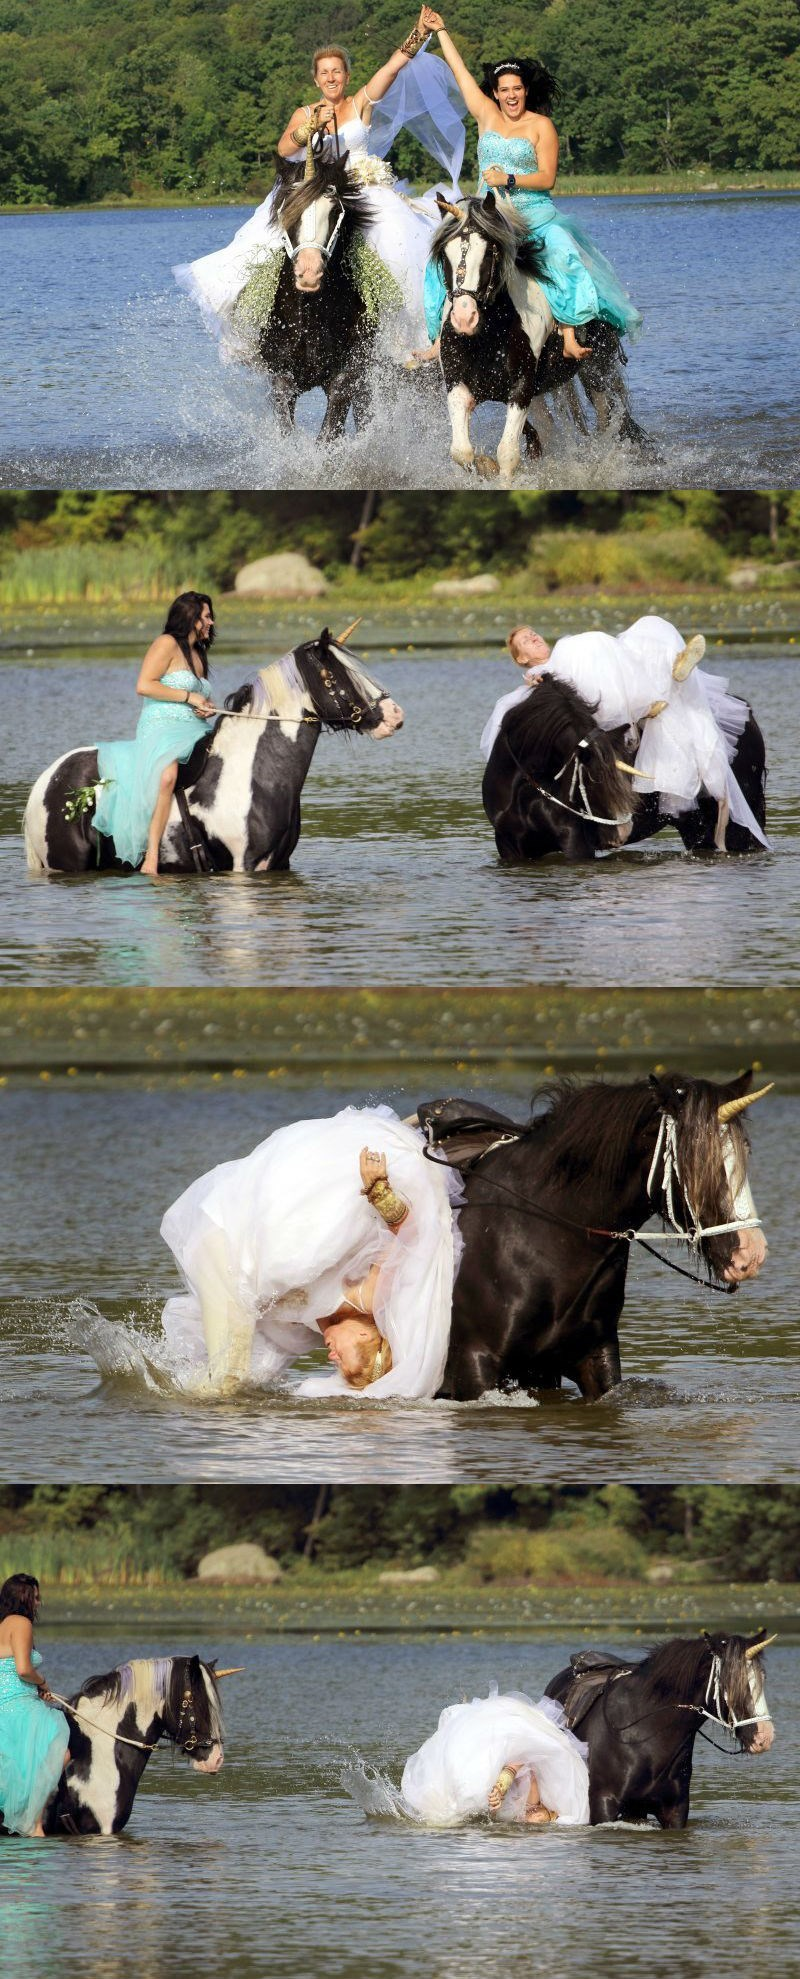 funny fail image bride falls off unicorn-horse in wedding photoshoot